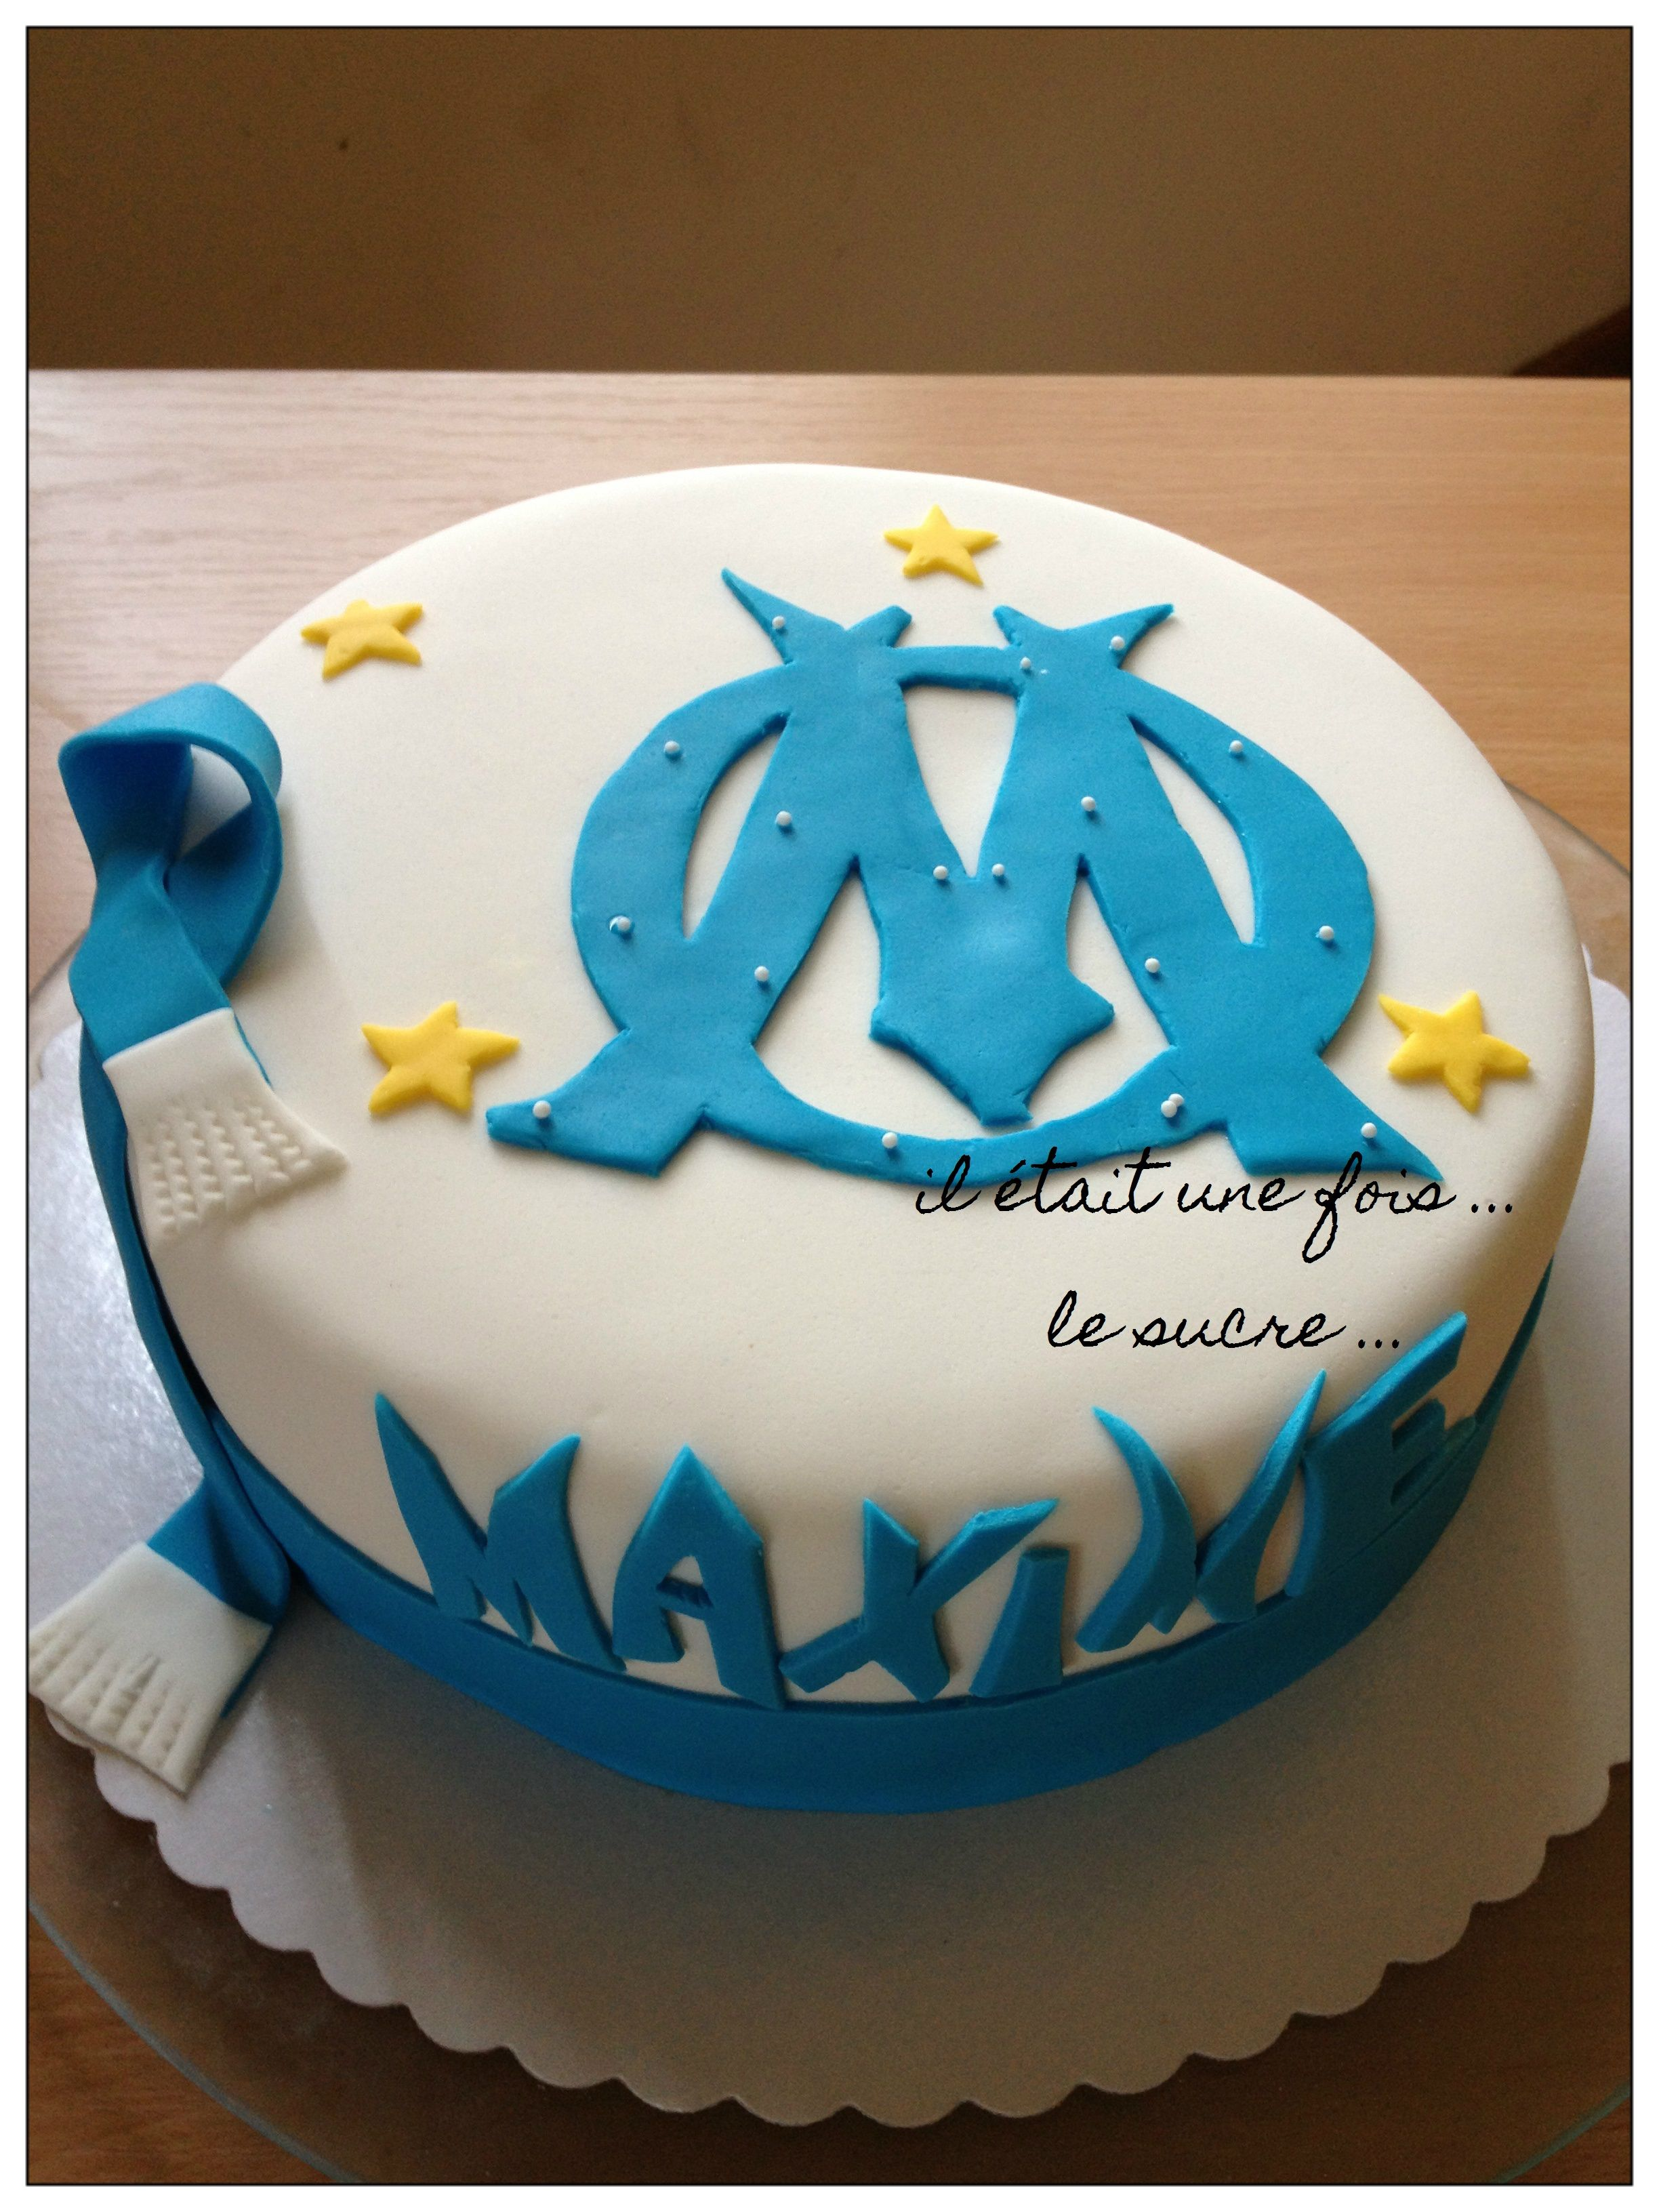 olympique marseille il tait une fois my sweet cakes